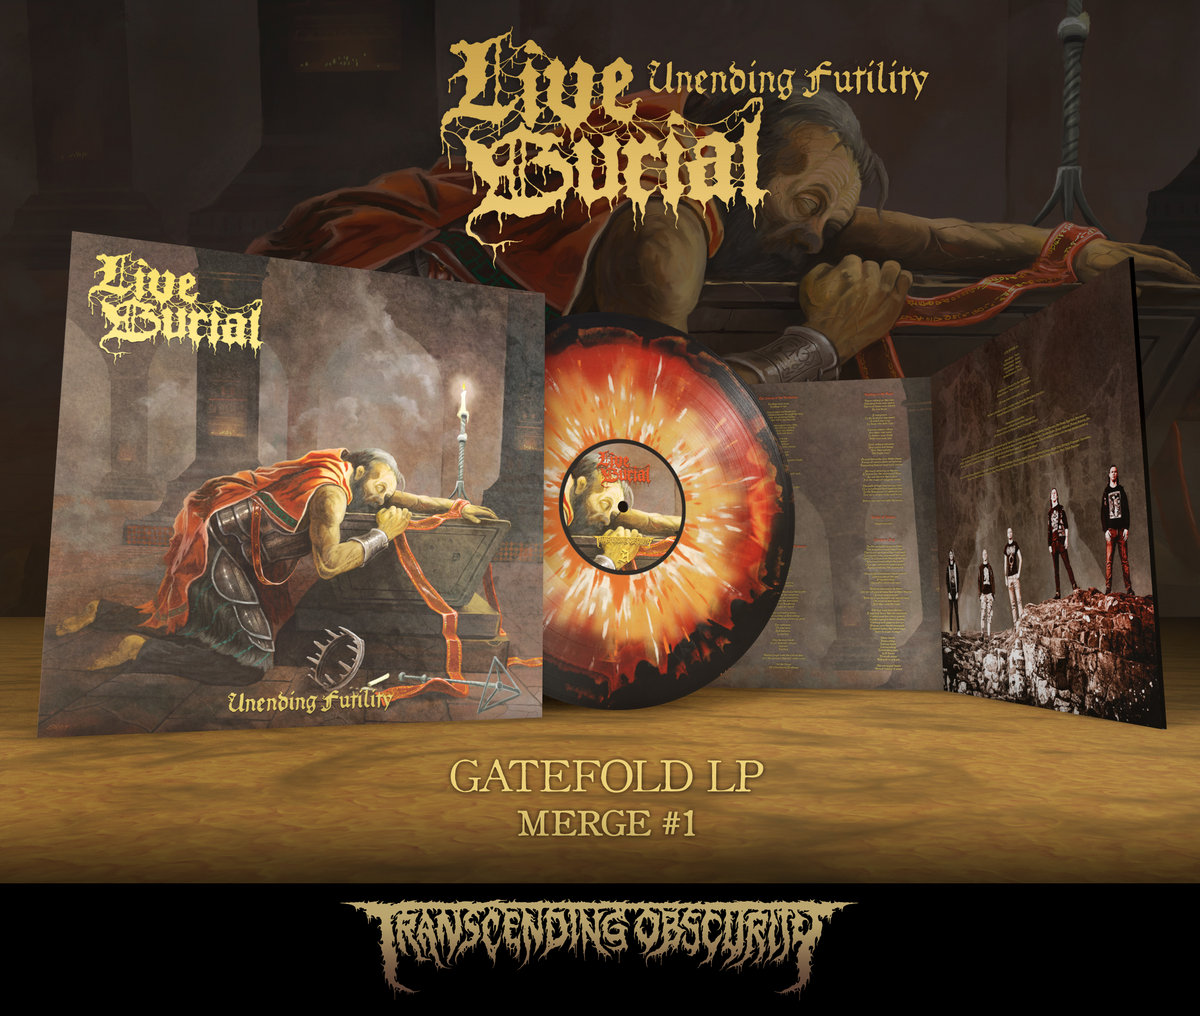 LIVE BURIAL Merge #1 Gatefold LP with metallic effect and embossing/UV (Limited to 75)